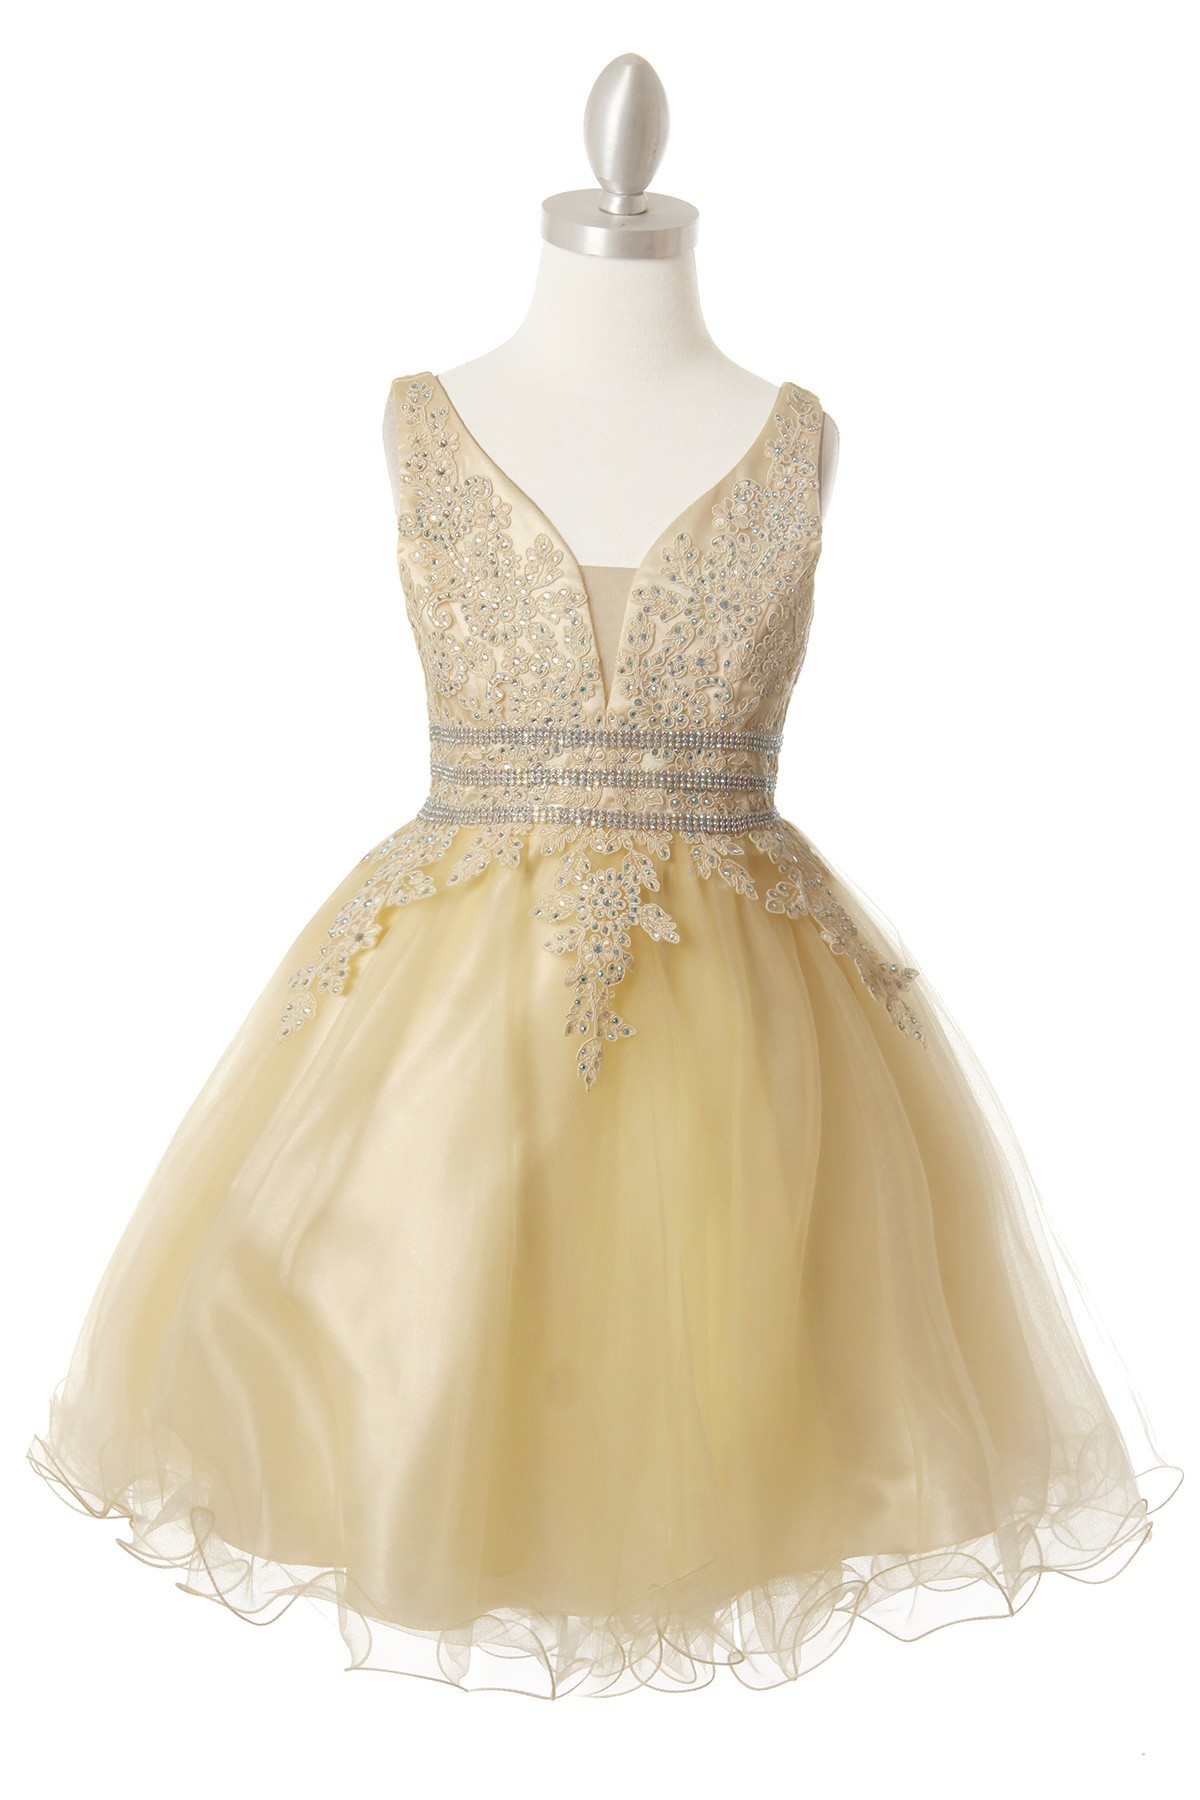 Girls short tulle champagne dress